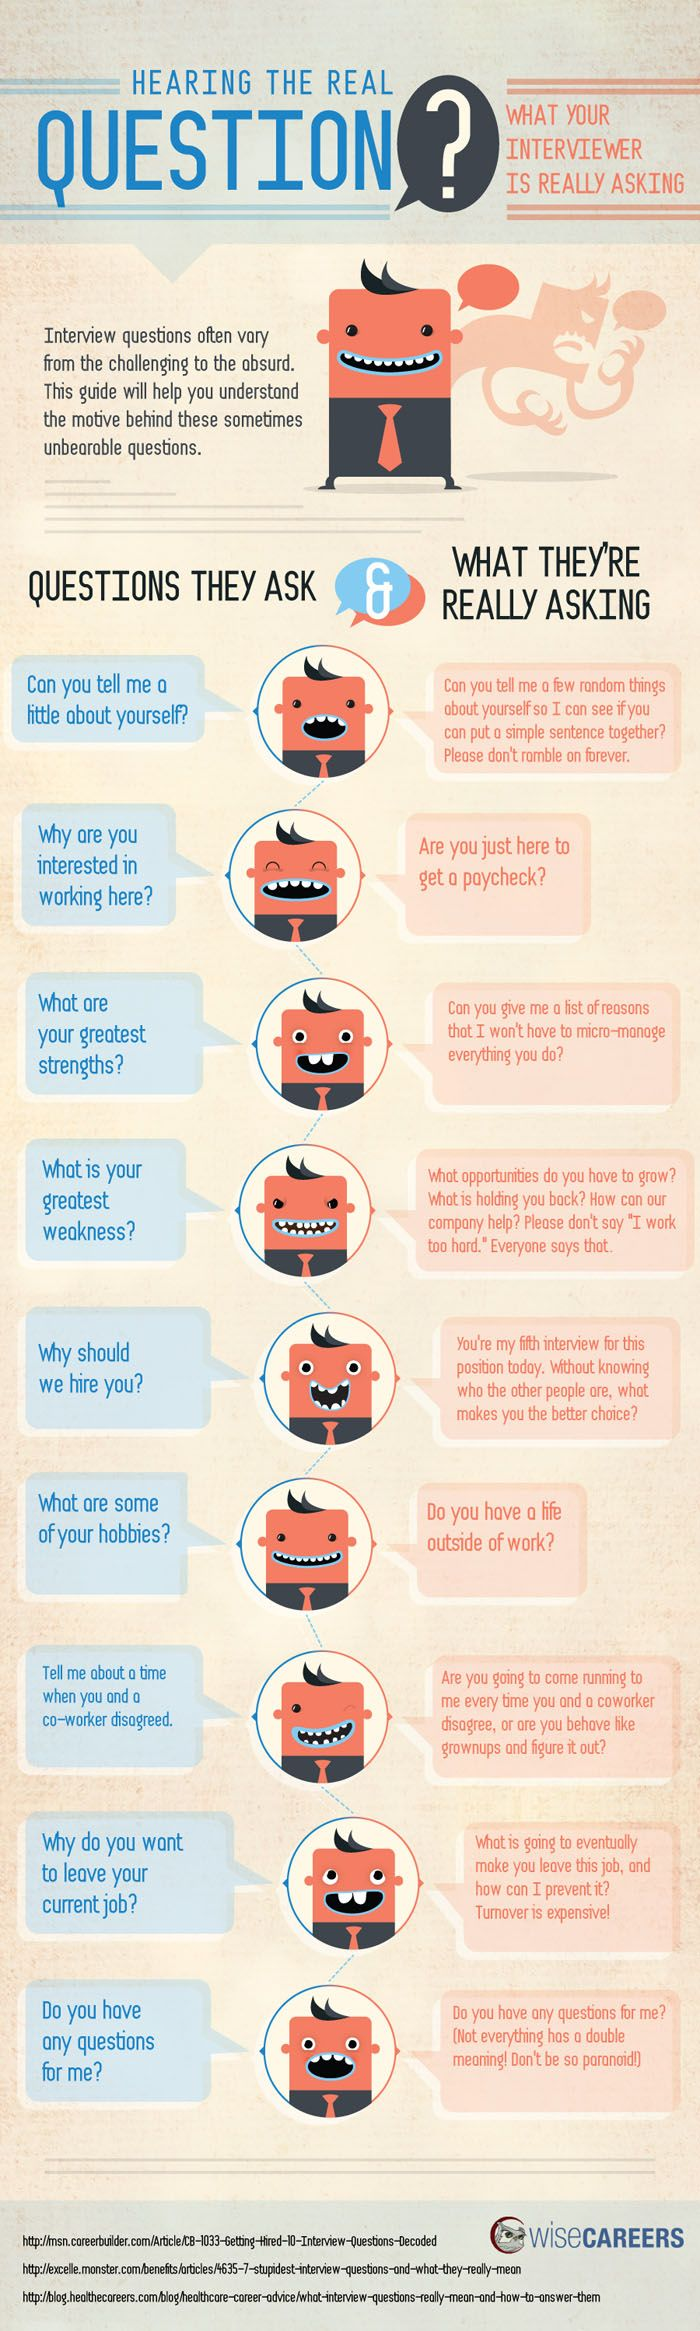 hearing the real question in your interview infographic